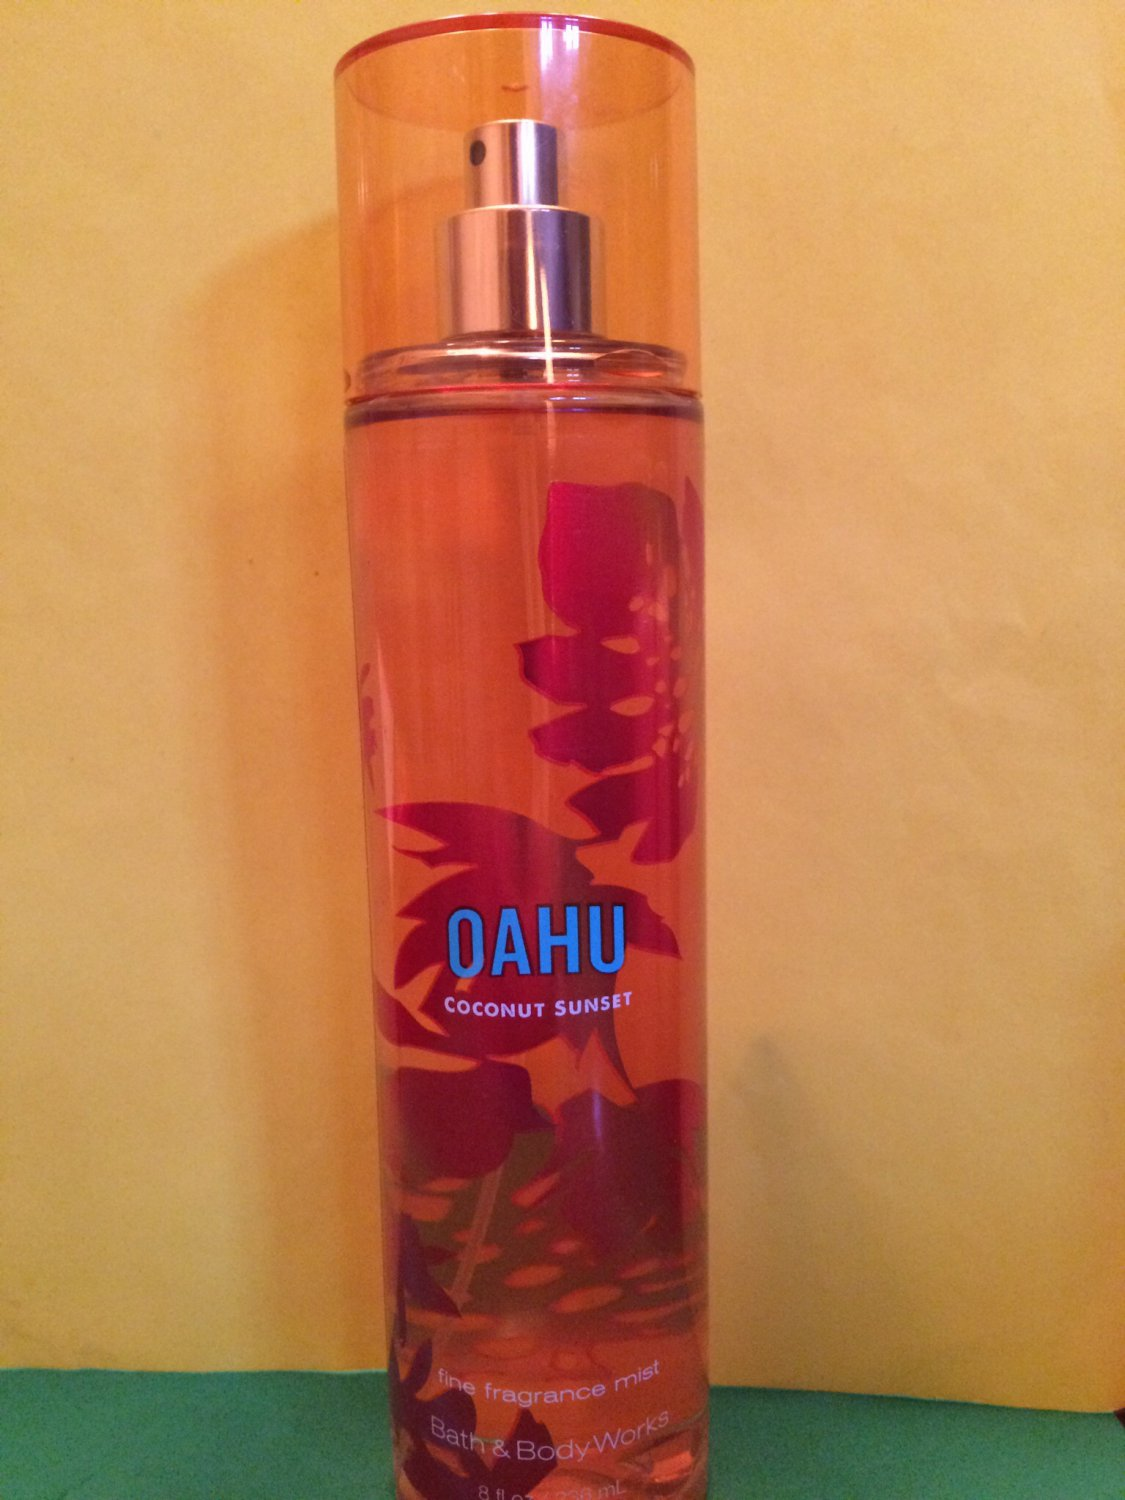 Bath body works oahu coconut sunset fine fragrance mist for Bath and body works scents best seller